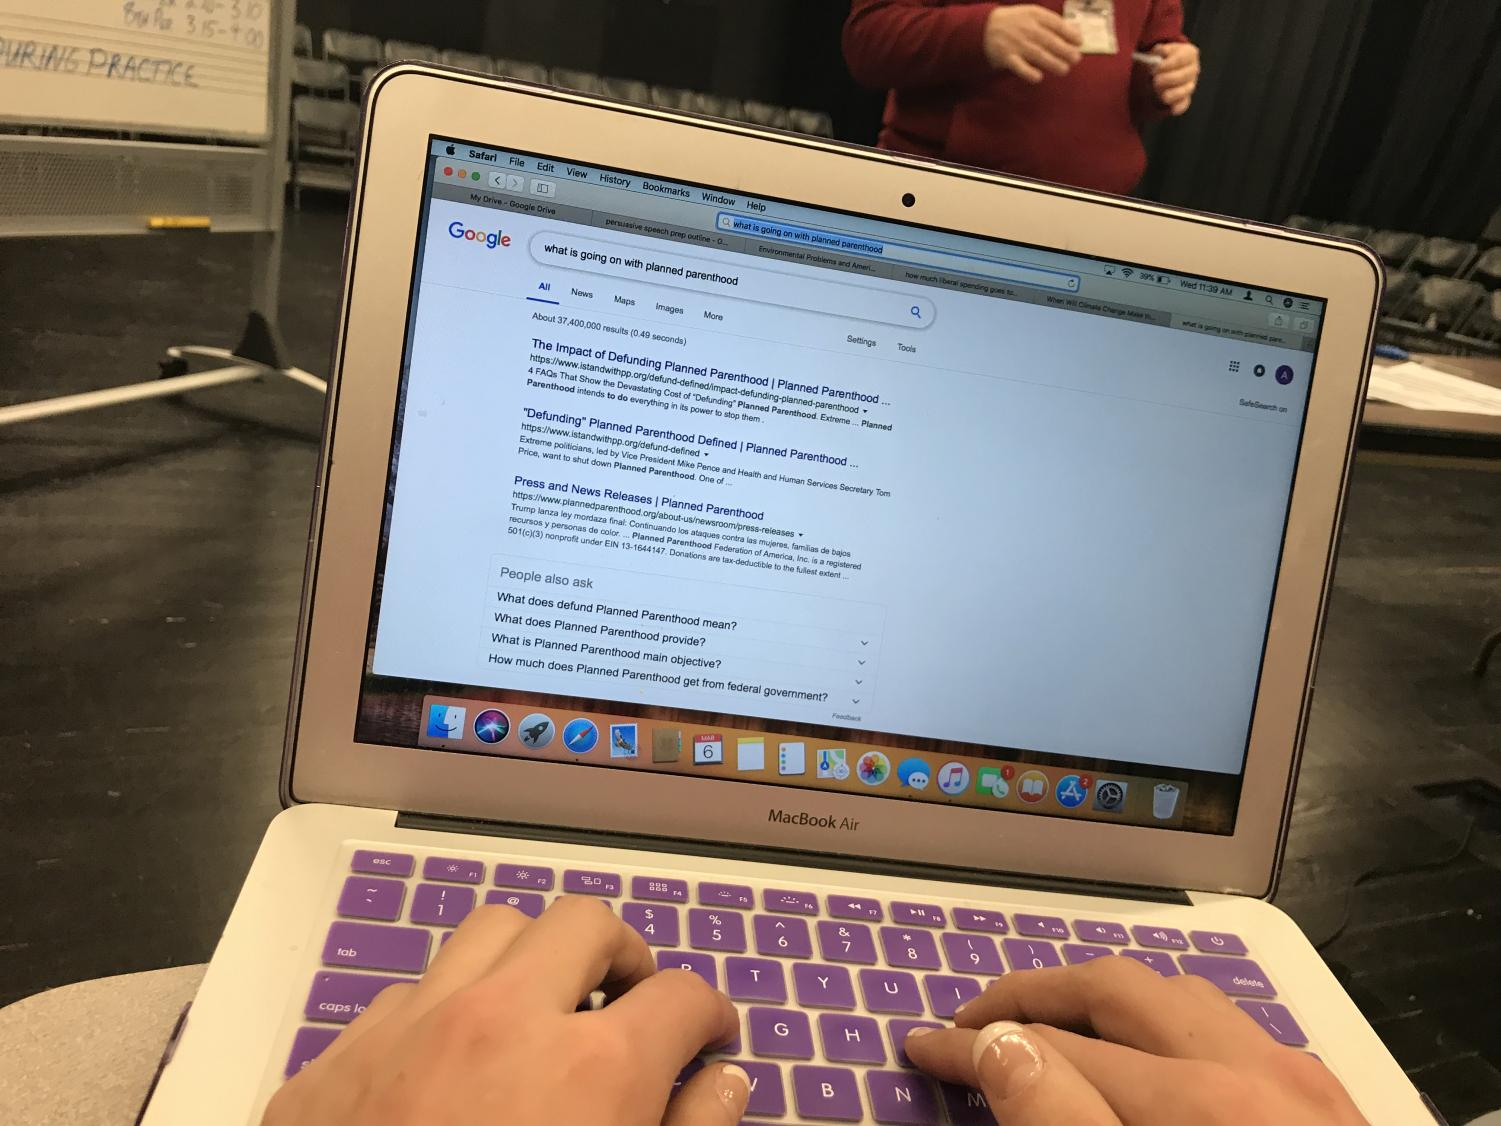 Senior student, Adrea Arthofer, looks at articles in question of what is happening to Planned Parenthood.